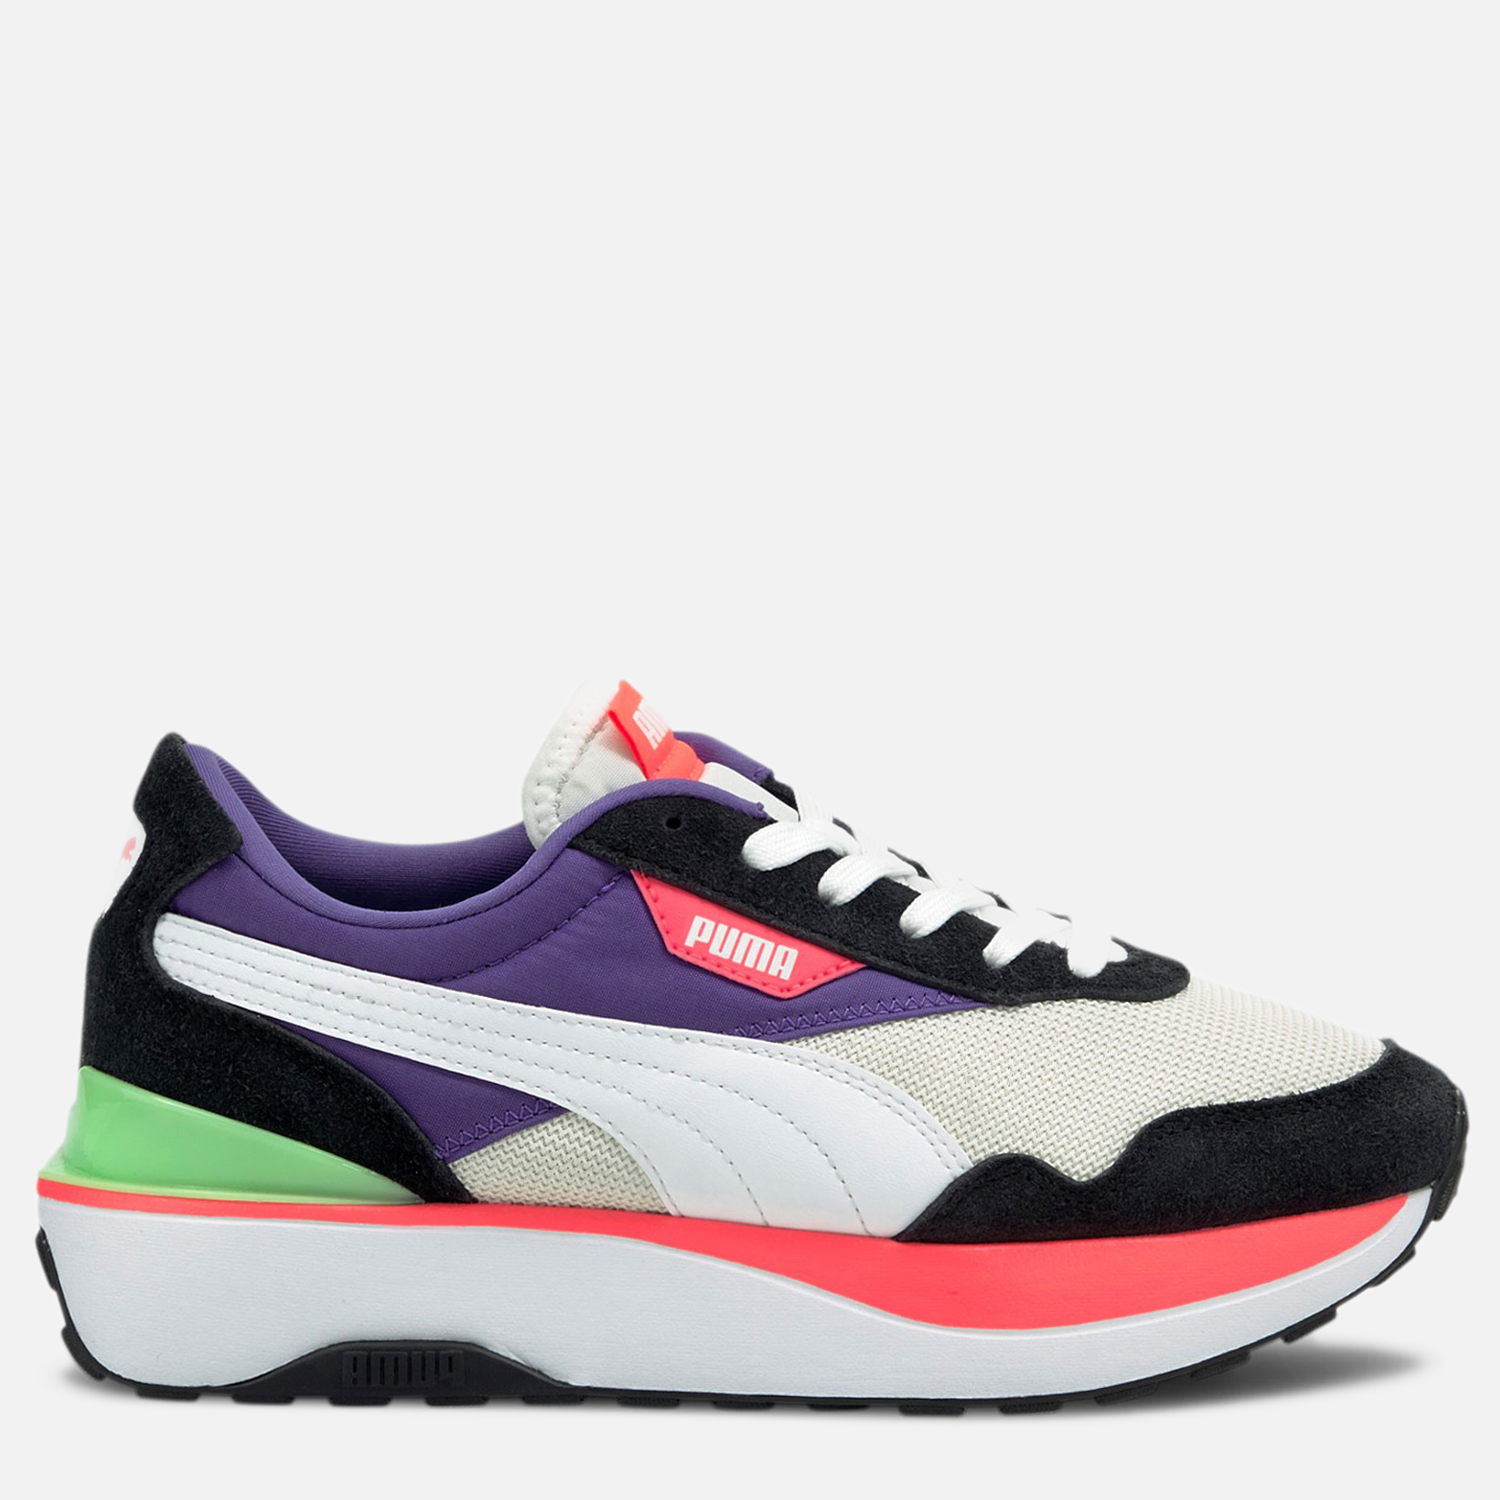 Puma Suedes SNEAKERS CRUISE RIDER SILK ROAD